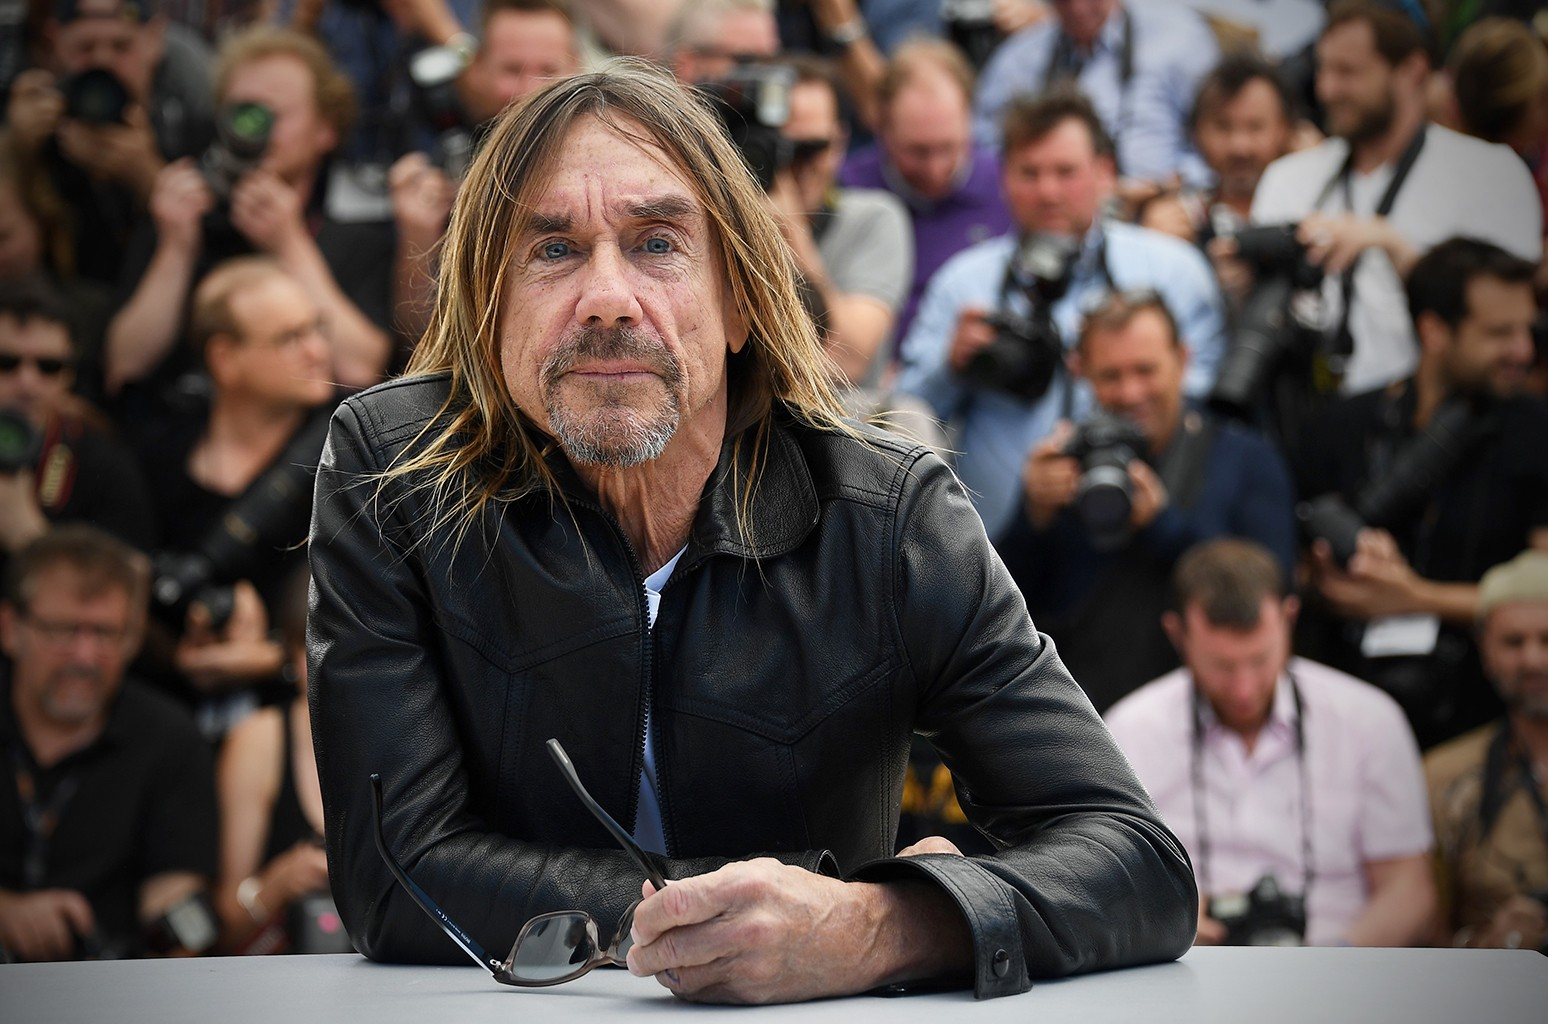 Iggy Pop at the 69th Cannes Film Festival